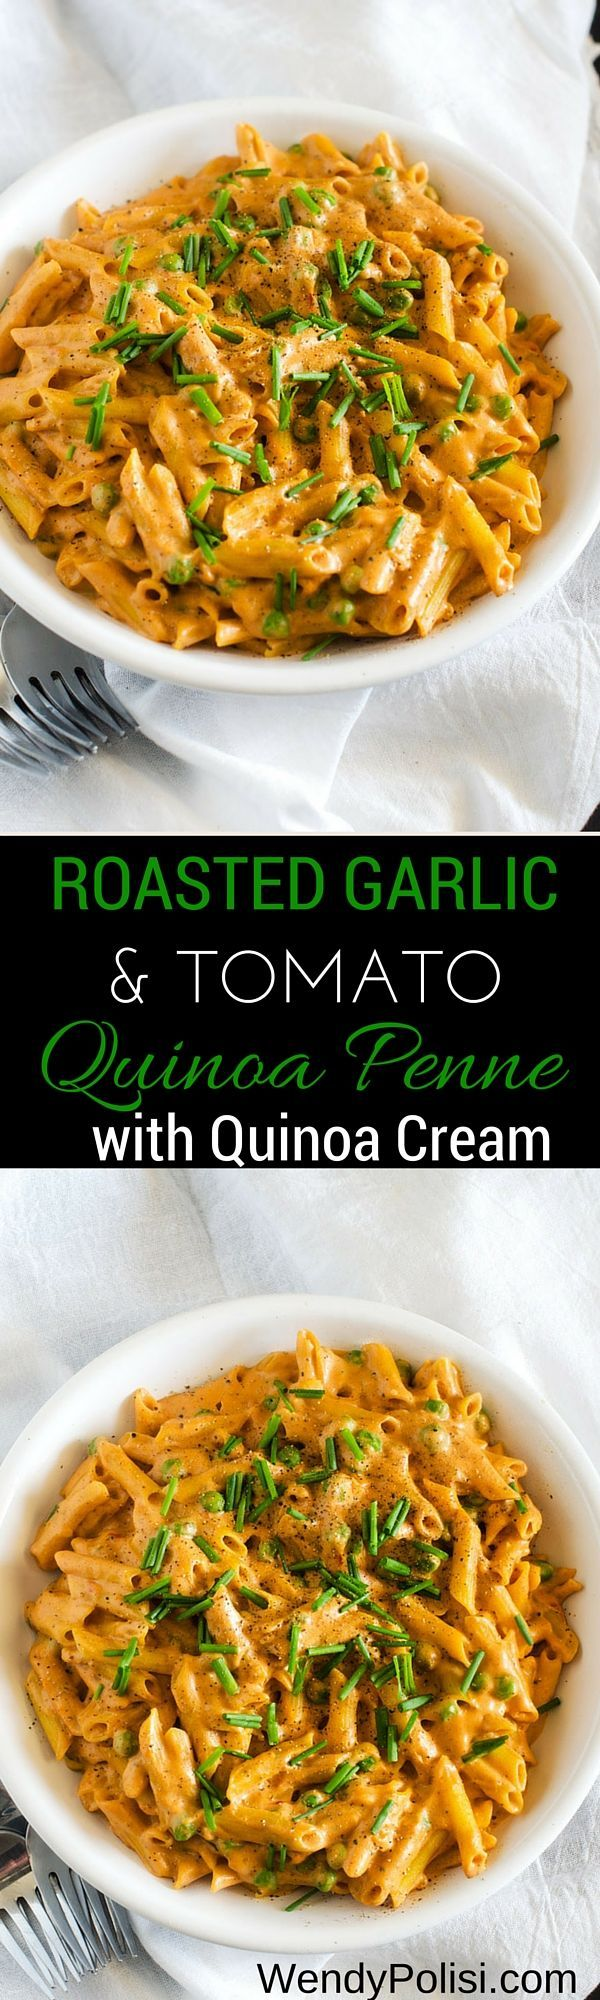 Creamy Roasted Garlic and Tomato Quinoa Penne - This healthy pasta dish has a secret ingredient....quinoa cream!  You will be amazed at what a great substitute it is for heavy cream. via @wendypolisi